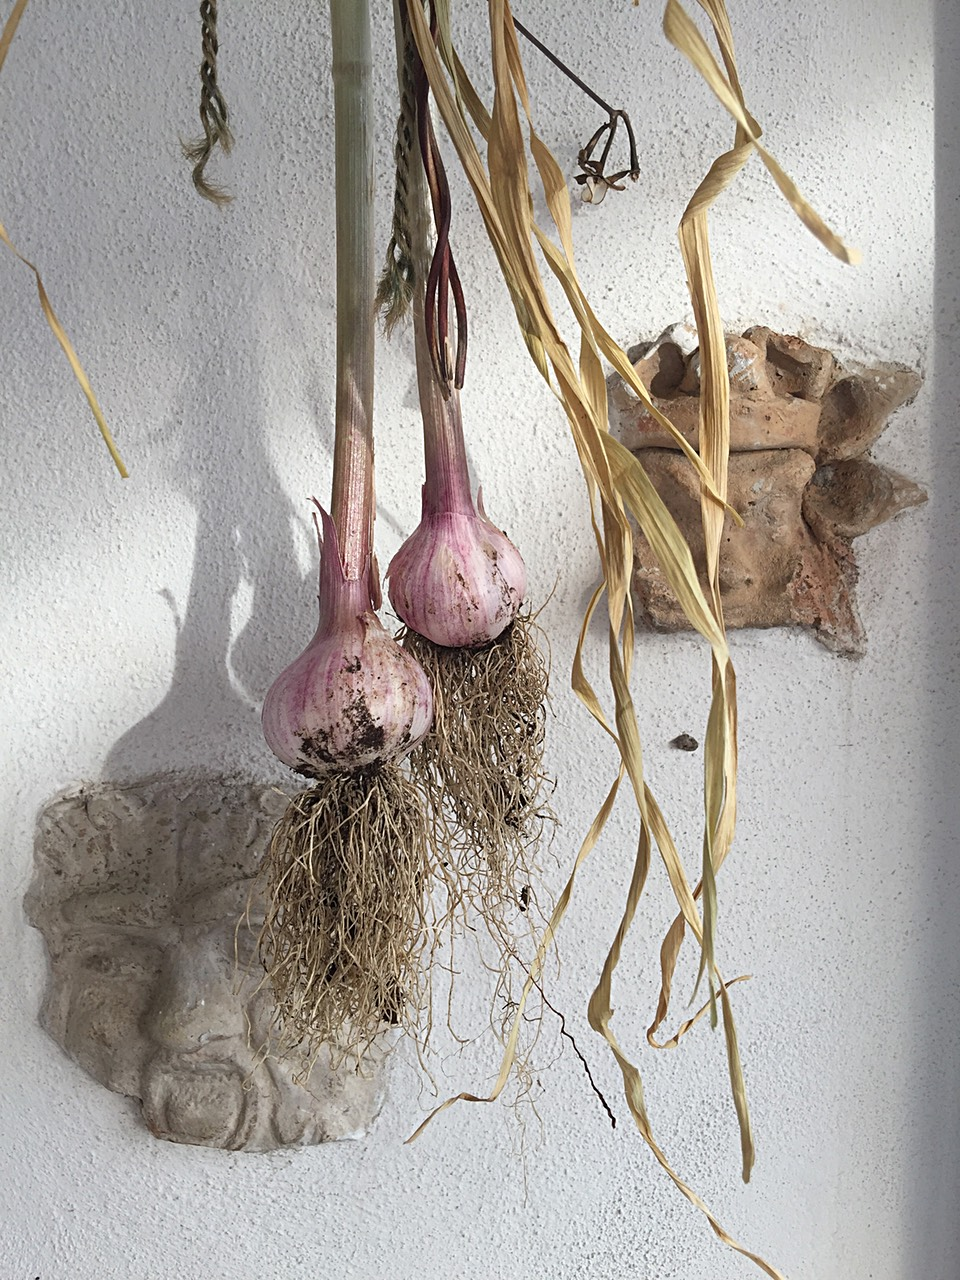 Two bulbs of garlic hanging to dry next to a wall